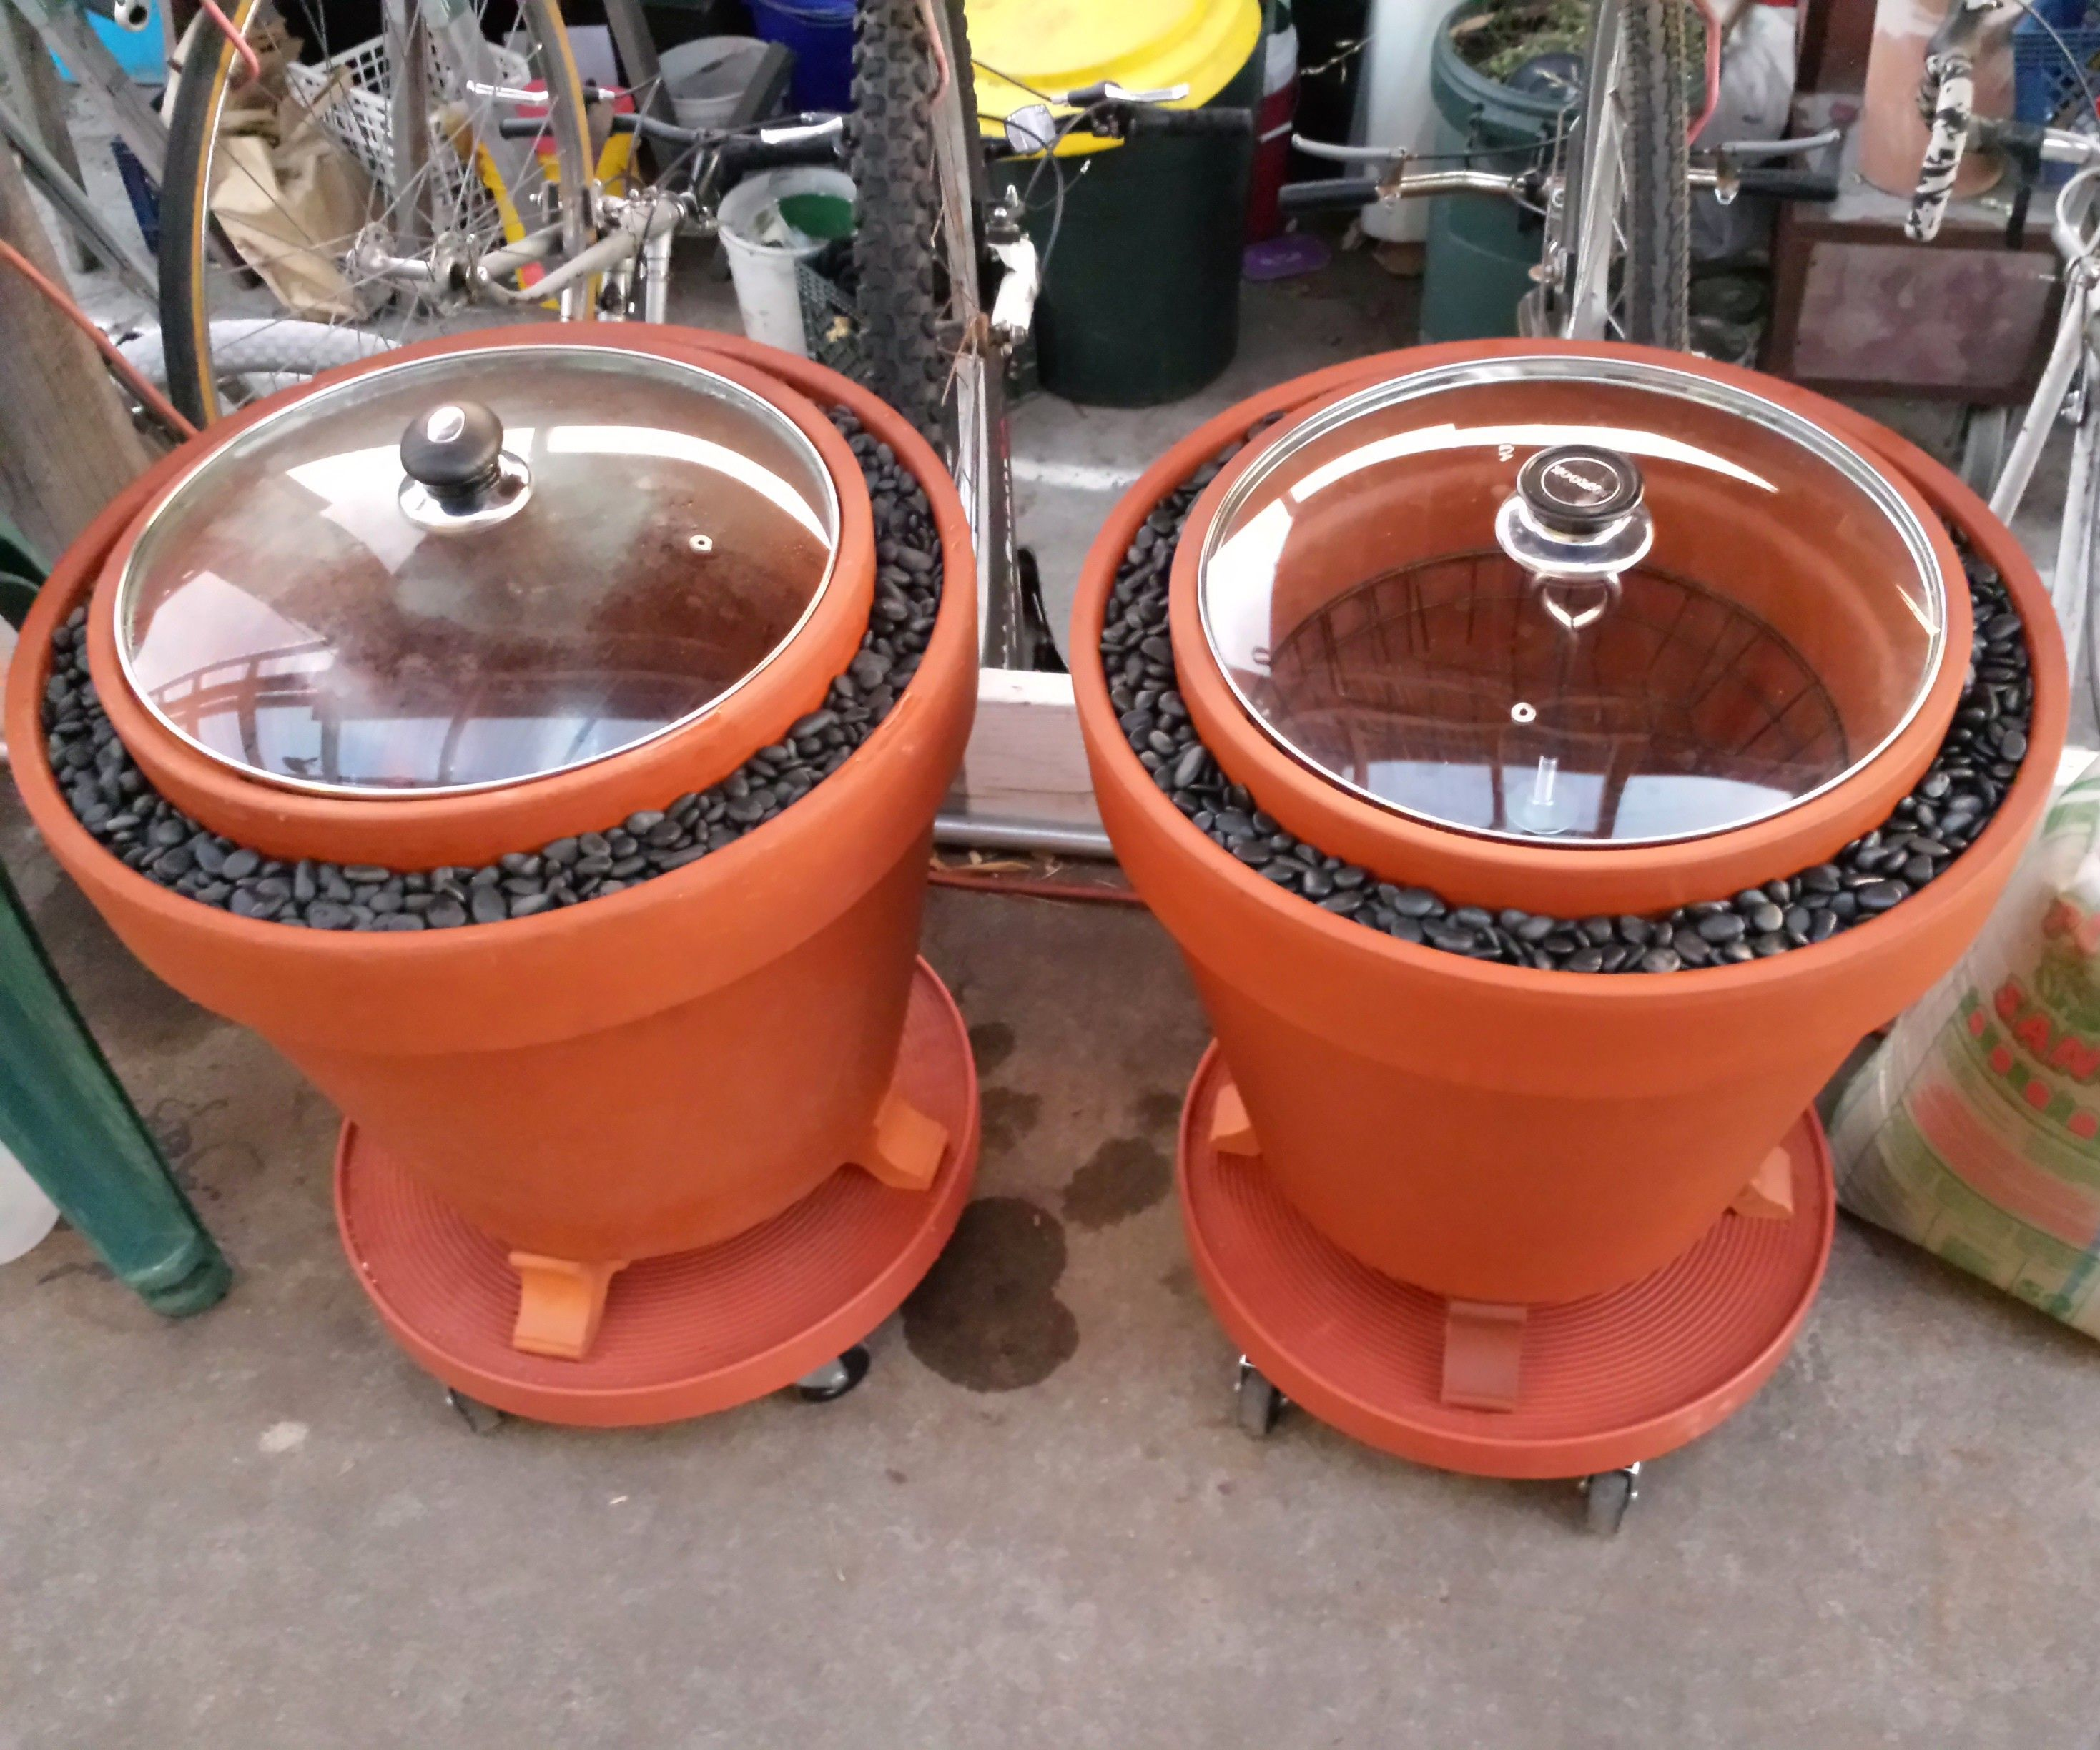 A Practical Zeer Pot (evaporative cooler / non-electrical refrigerator)